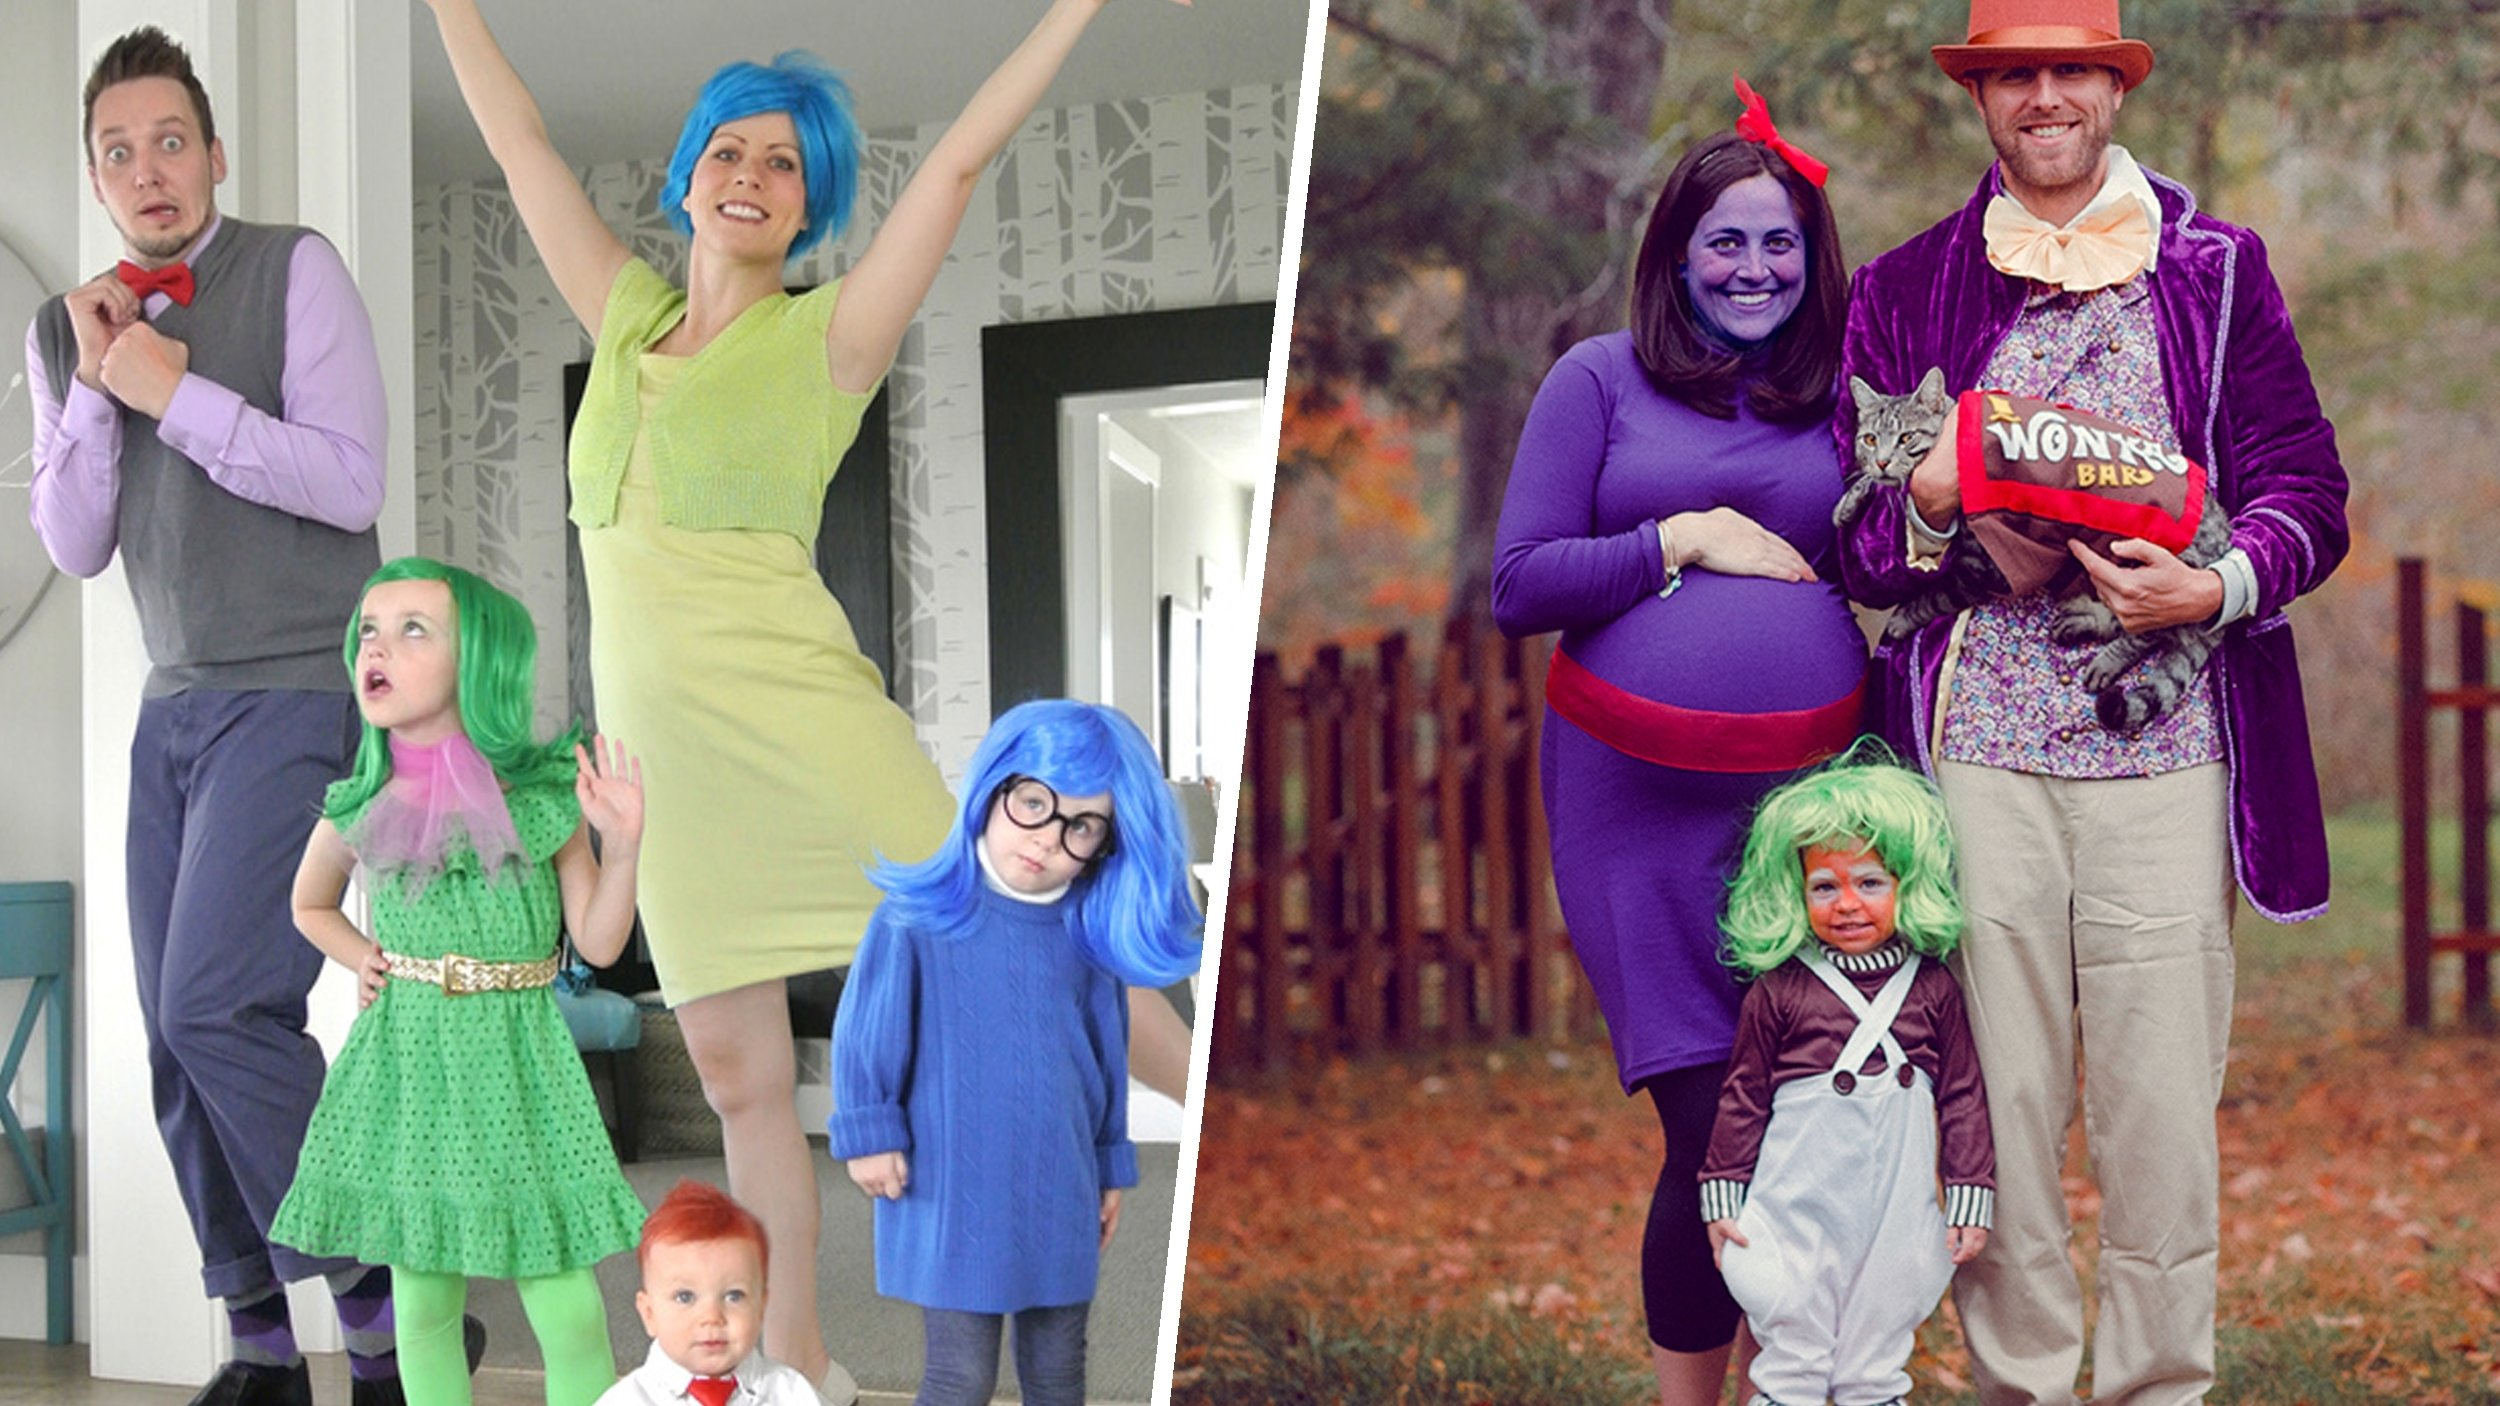 10 Unique Family Of 4 Costume Ideas family halloween costumes 8 pinterest ideas to inspire you today 2020